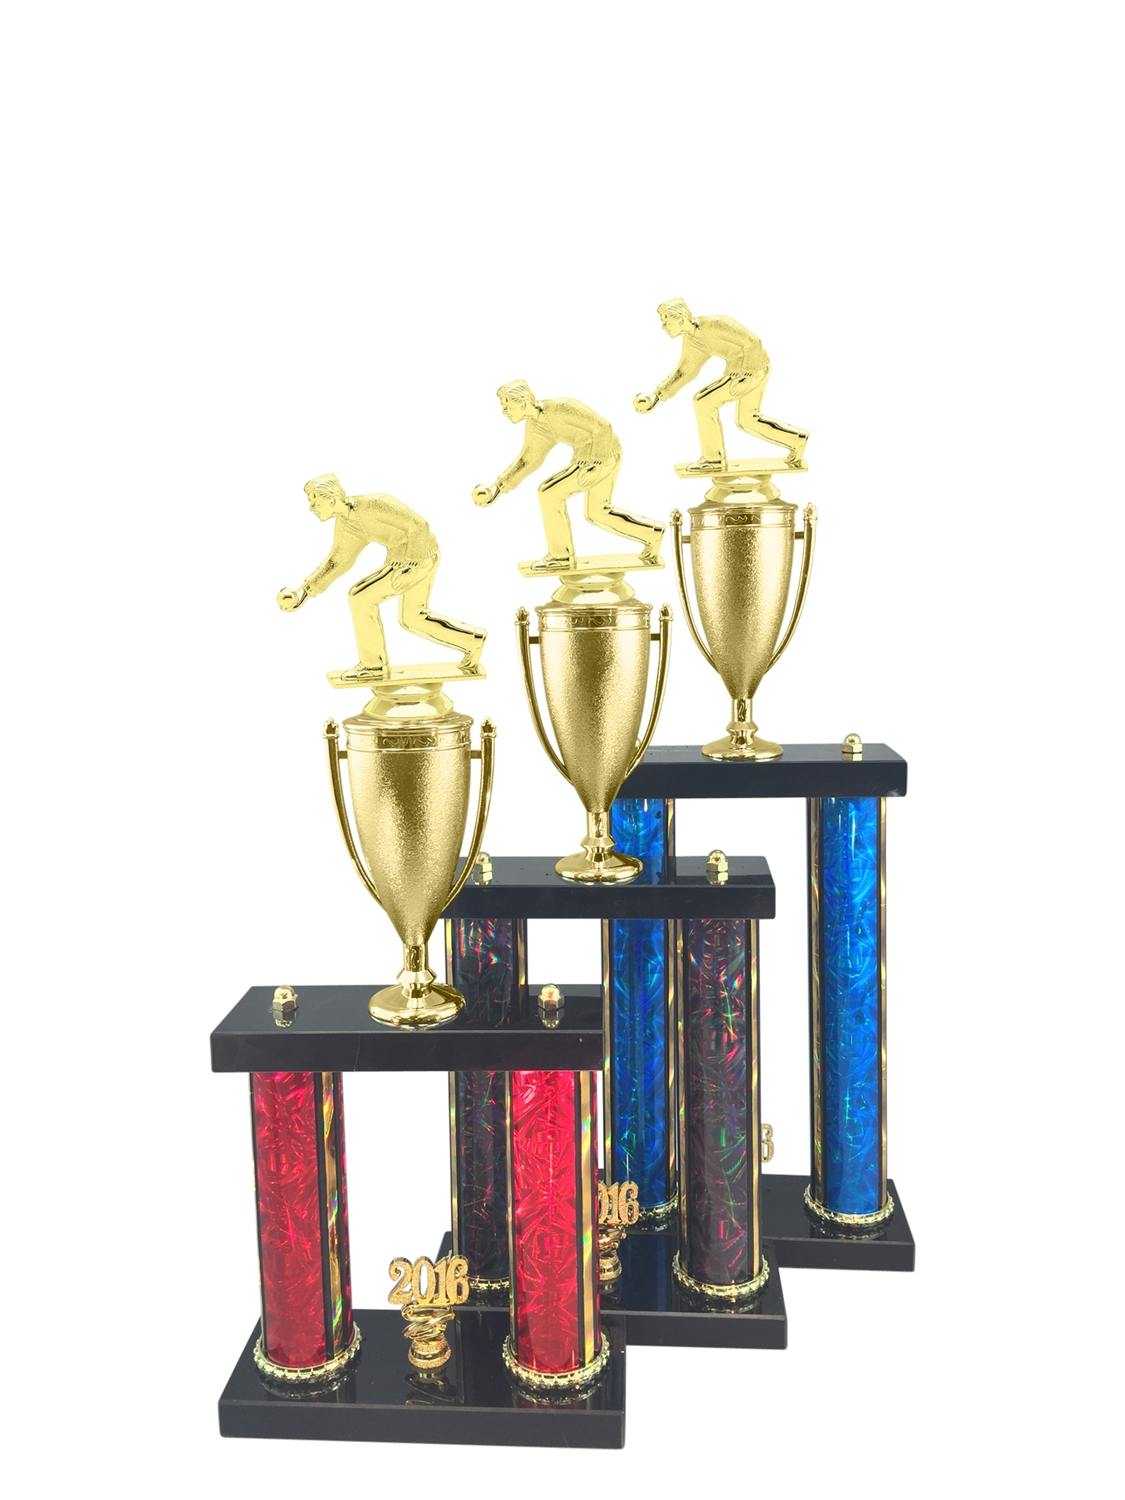 Male Lawn Bowling Trophy Available in 11 Color & 3 Size Options